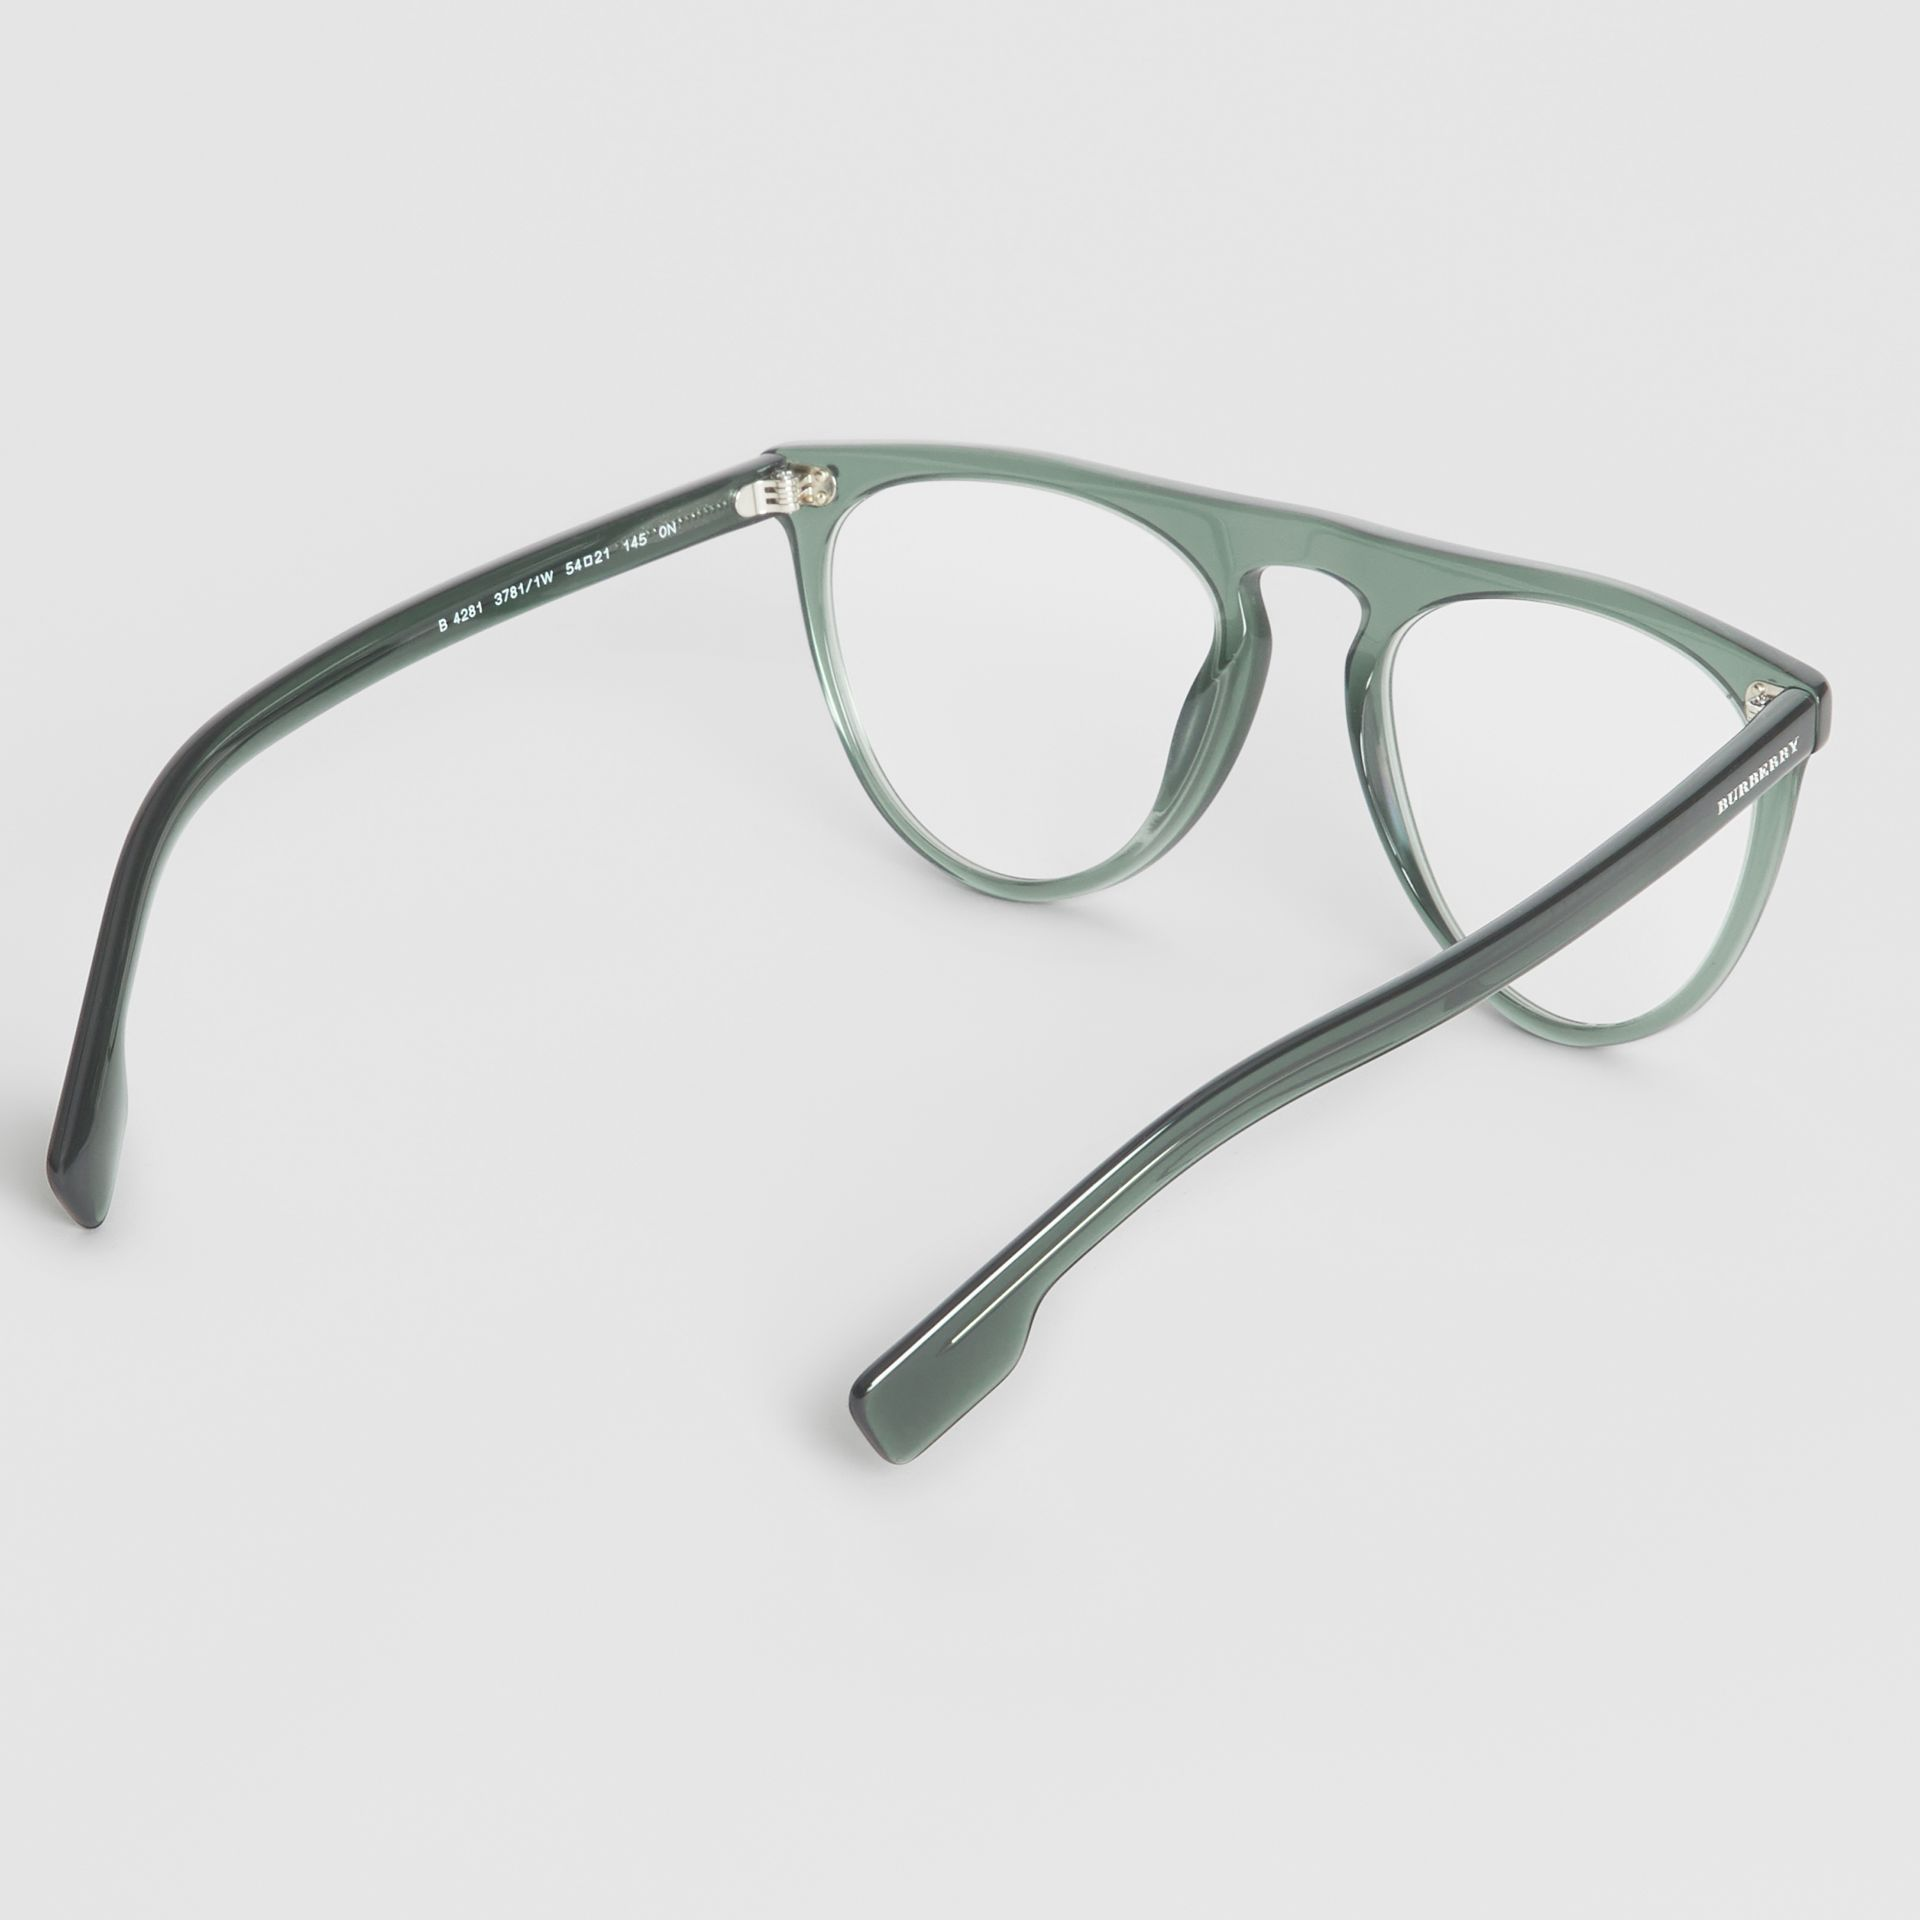 Keyhole D-shaped Optical Frames in Green - Men | Burberry - gallery image 4